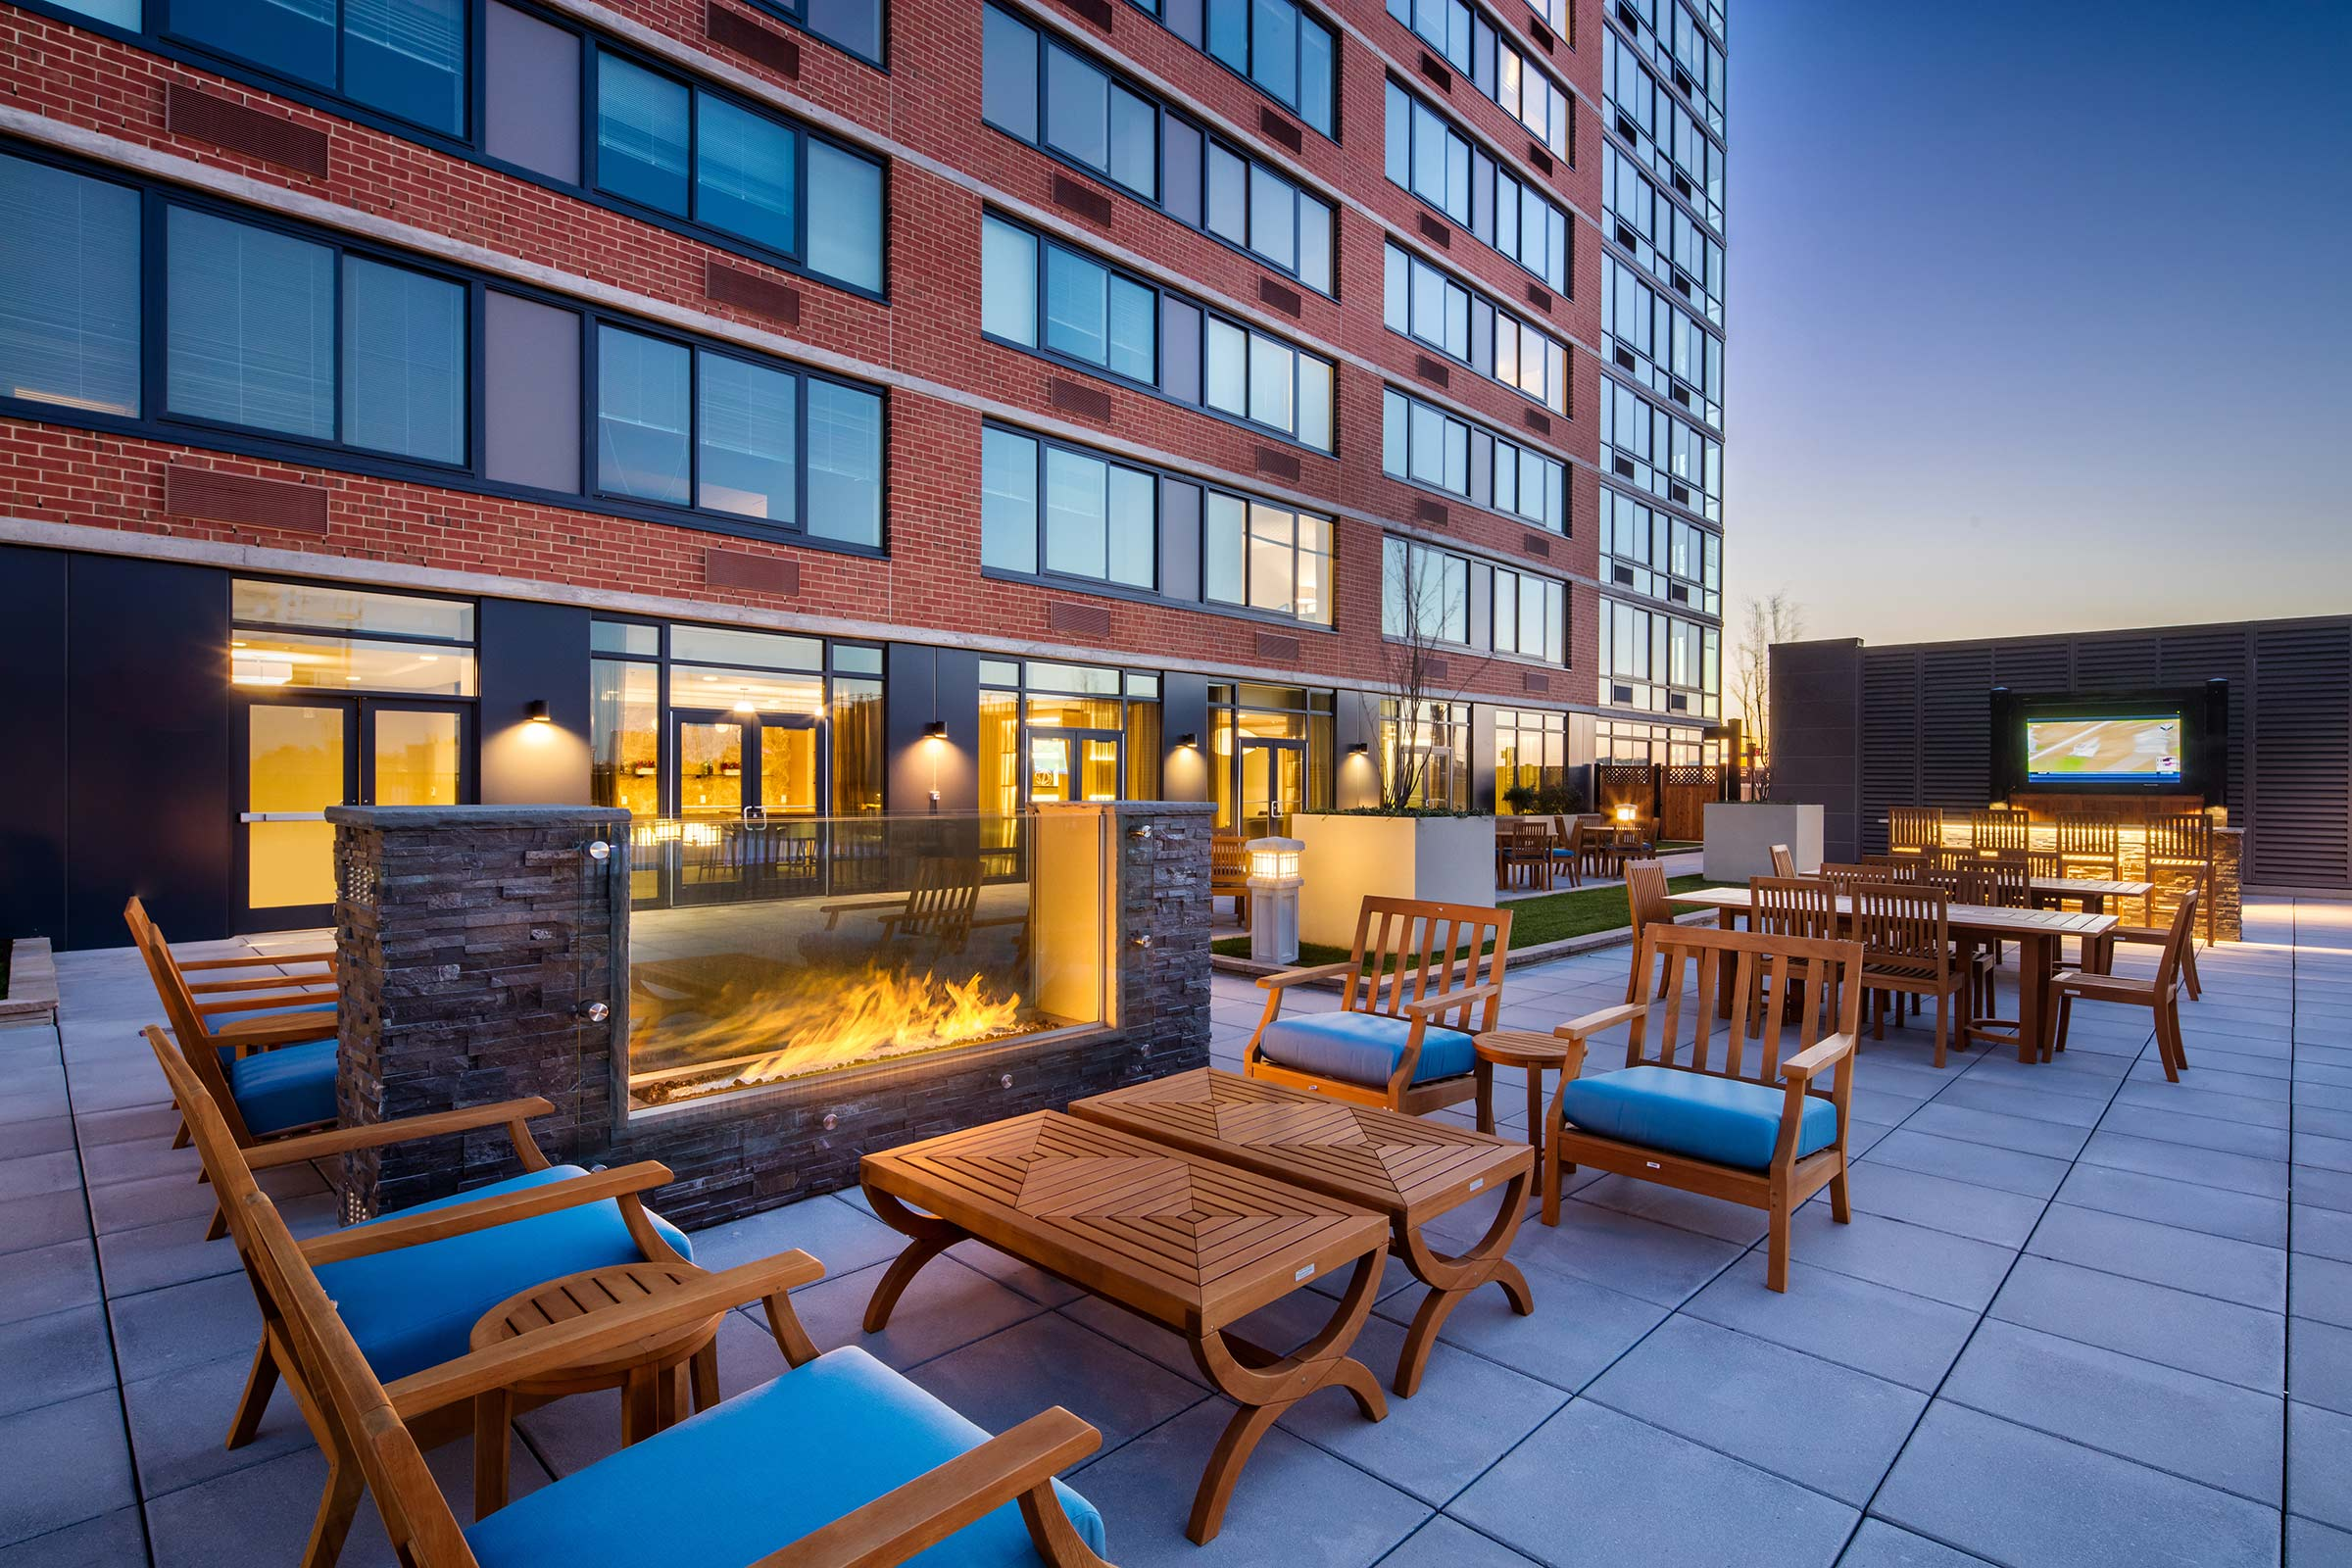 courtyard with fire pit, outdoor seating and wall-mounted TV at The Morgan at Provost Square